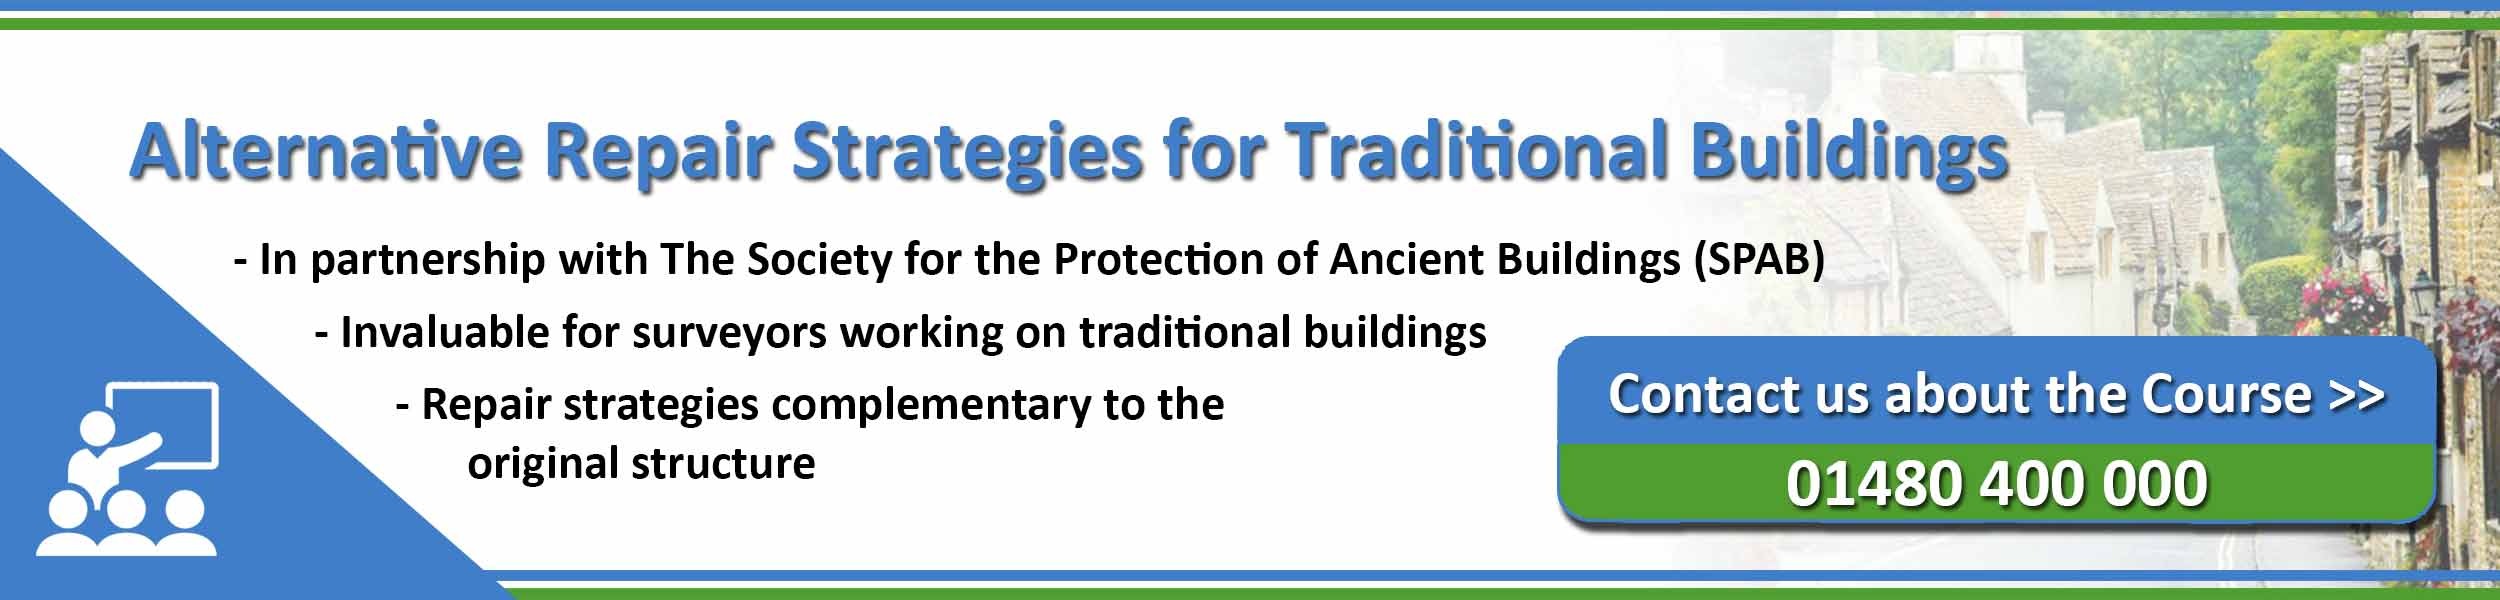 PCA Alternative Repair Strategies for Traditional Buildings